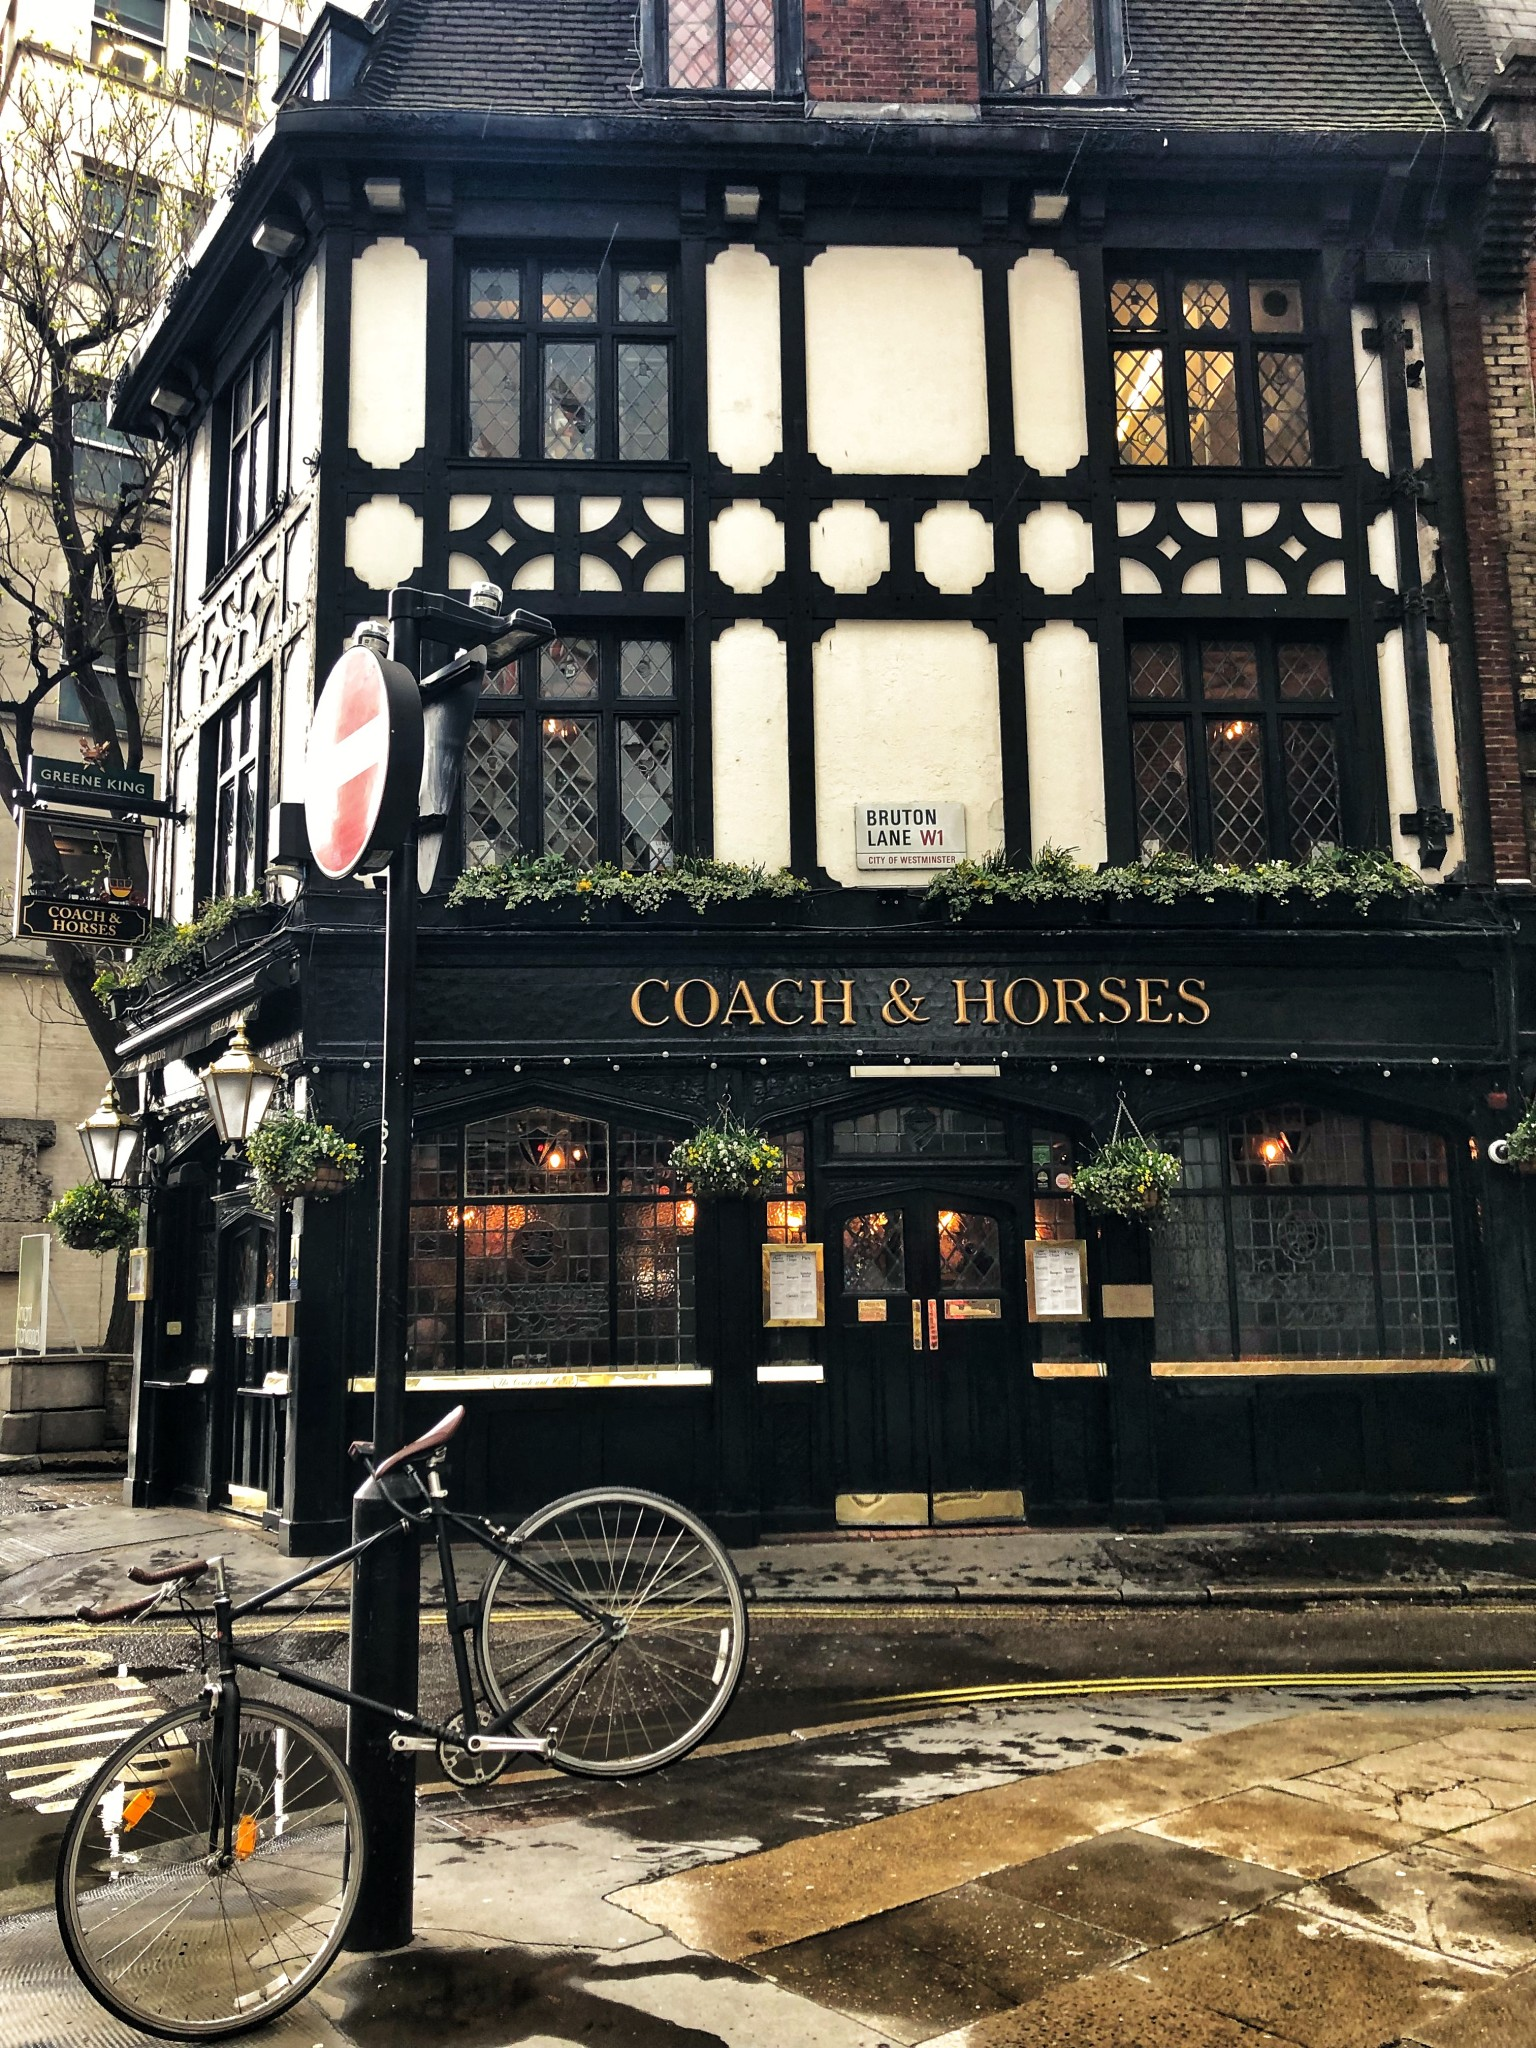 coach and horses pub, most instagrammable places in london, the-alyst.com